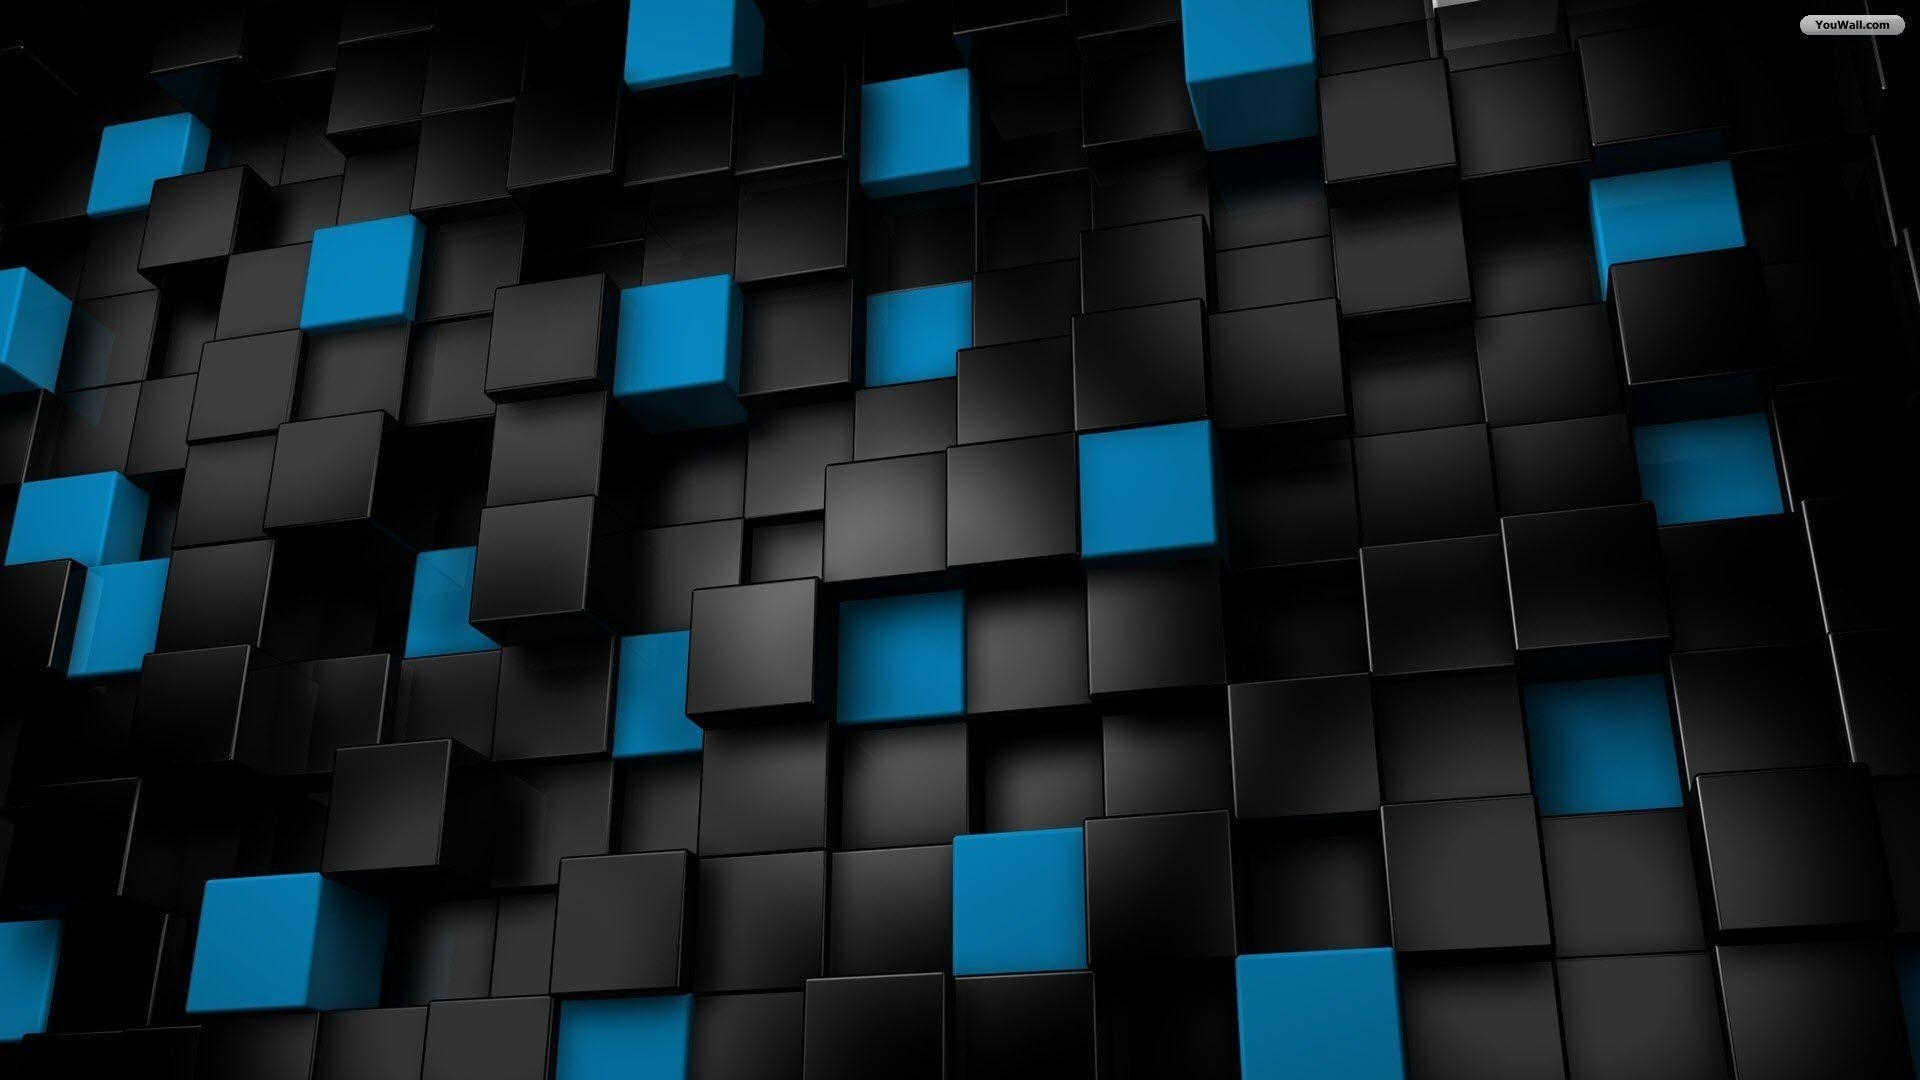 10 New Cool Black And Blue Wallpaper FULL HD 1920×1080 For PC Desktop